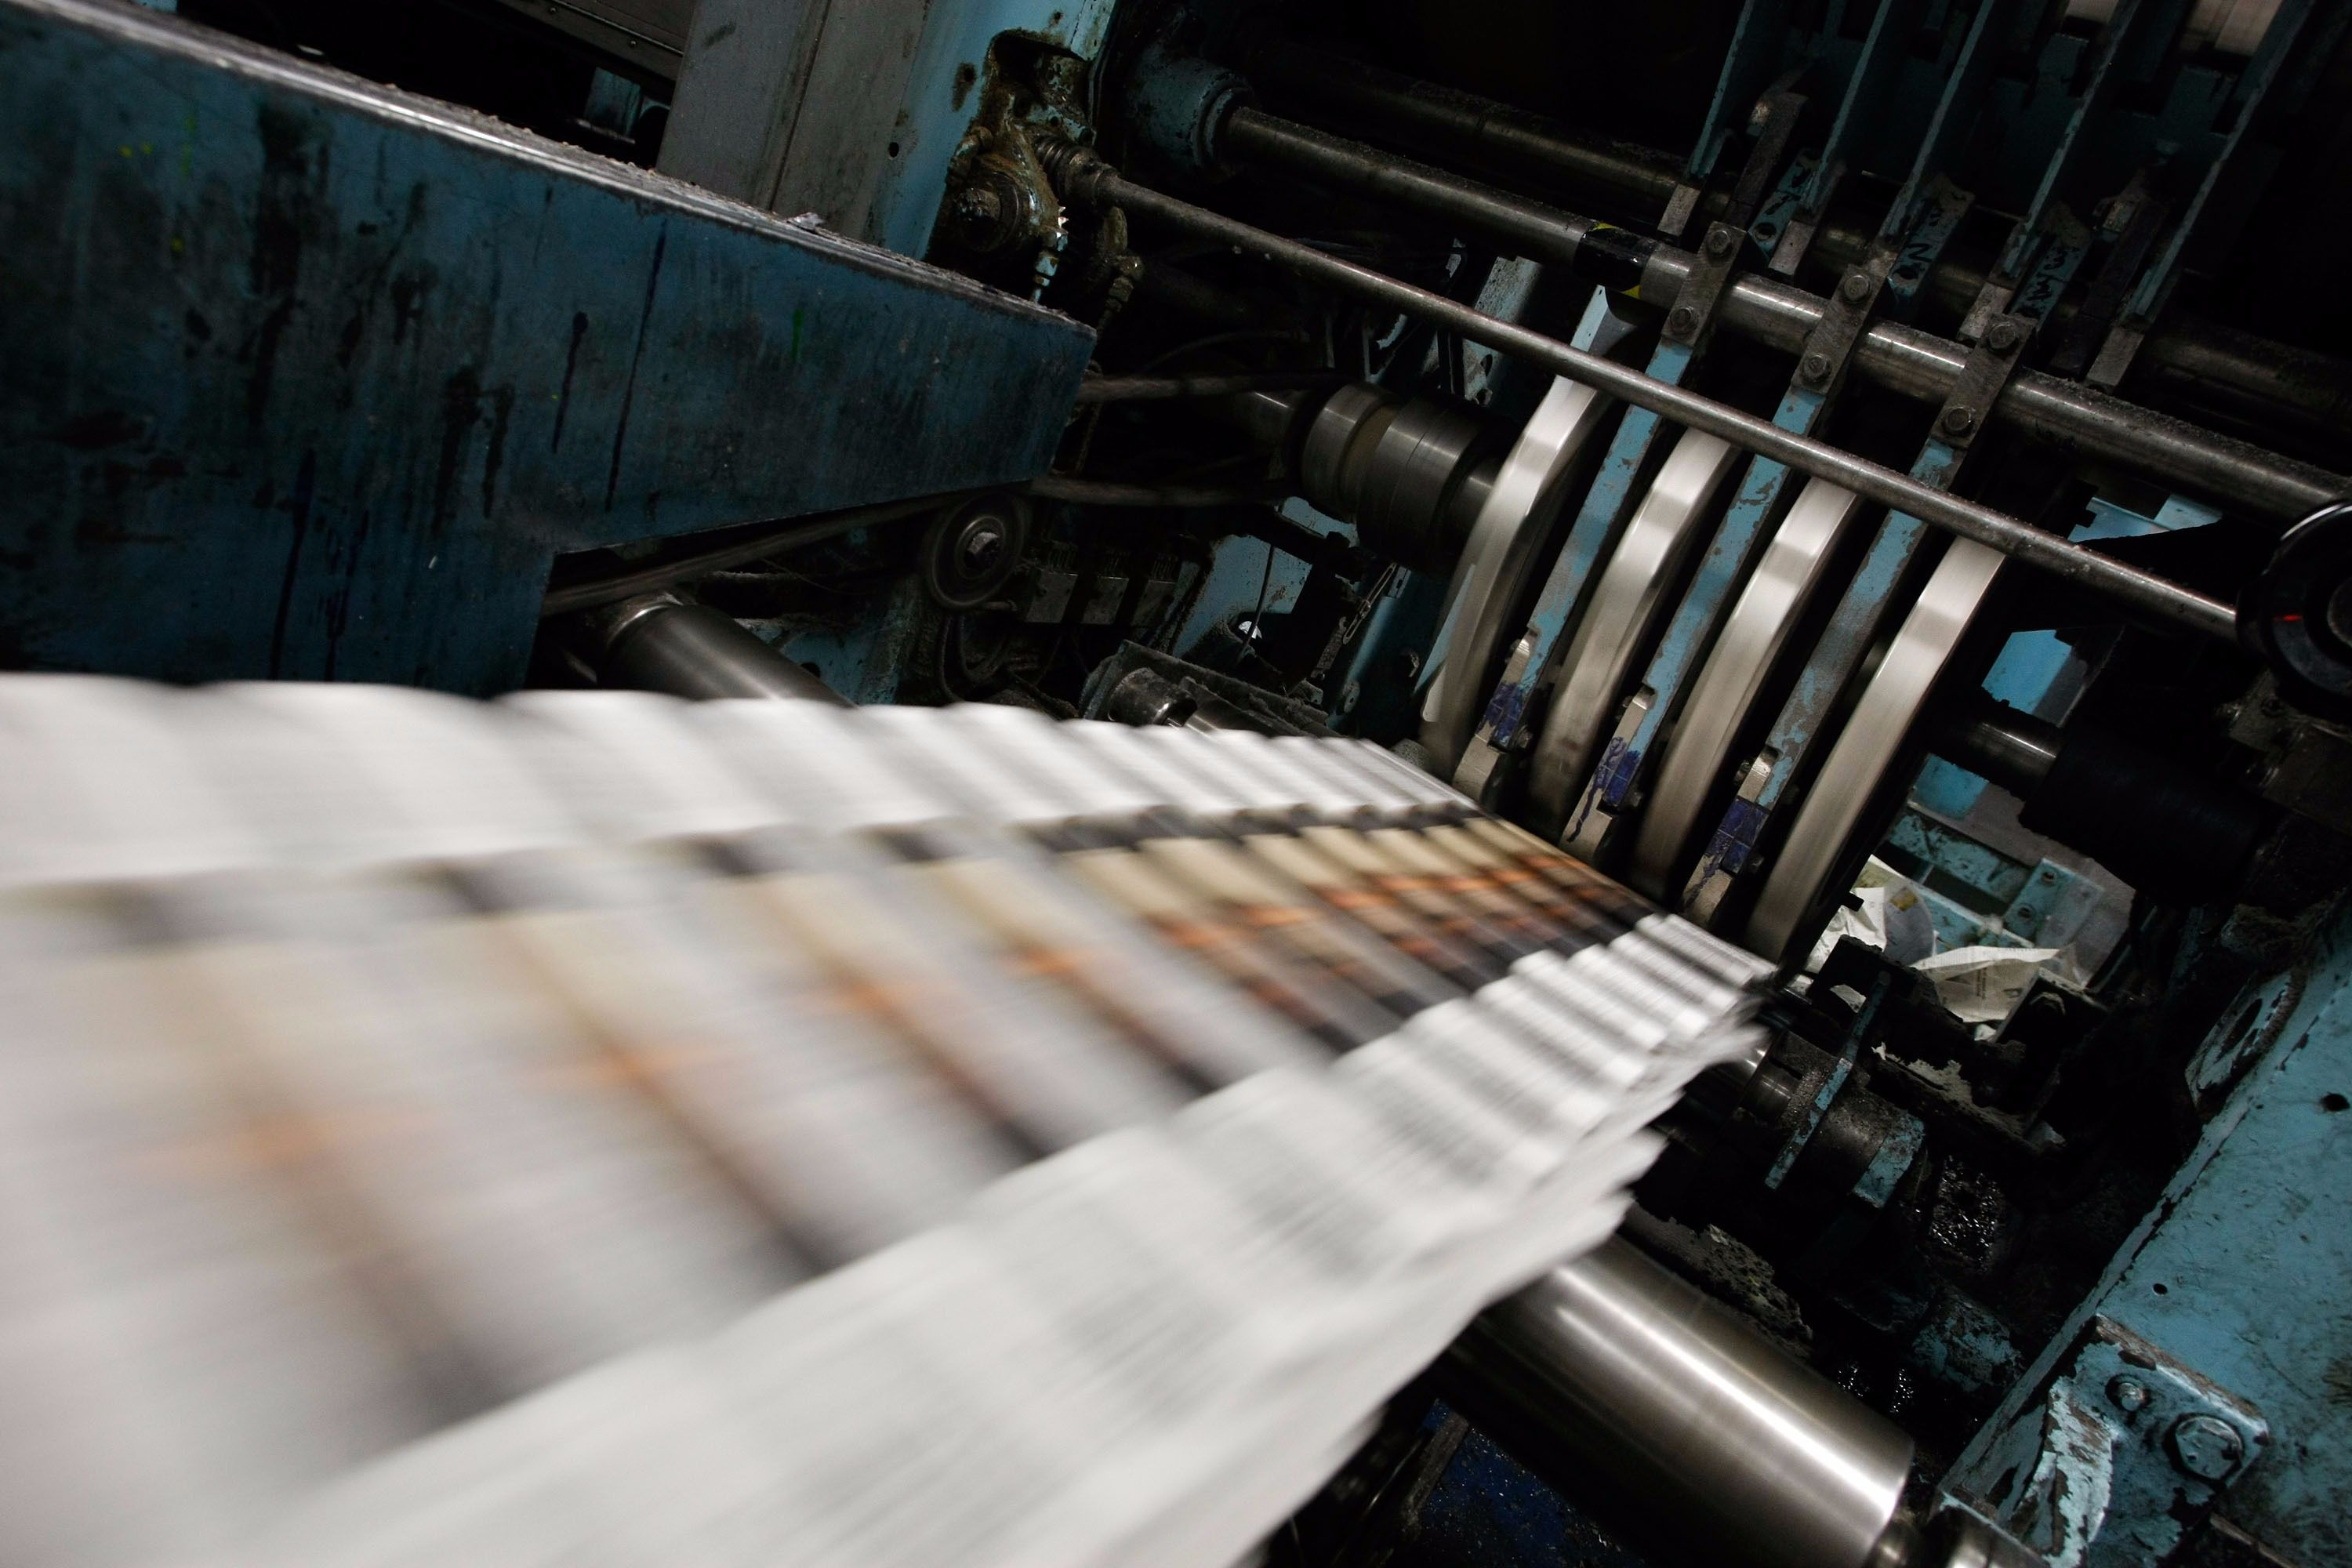 Newspapers on the printer.